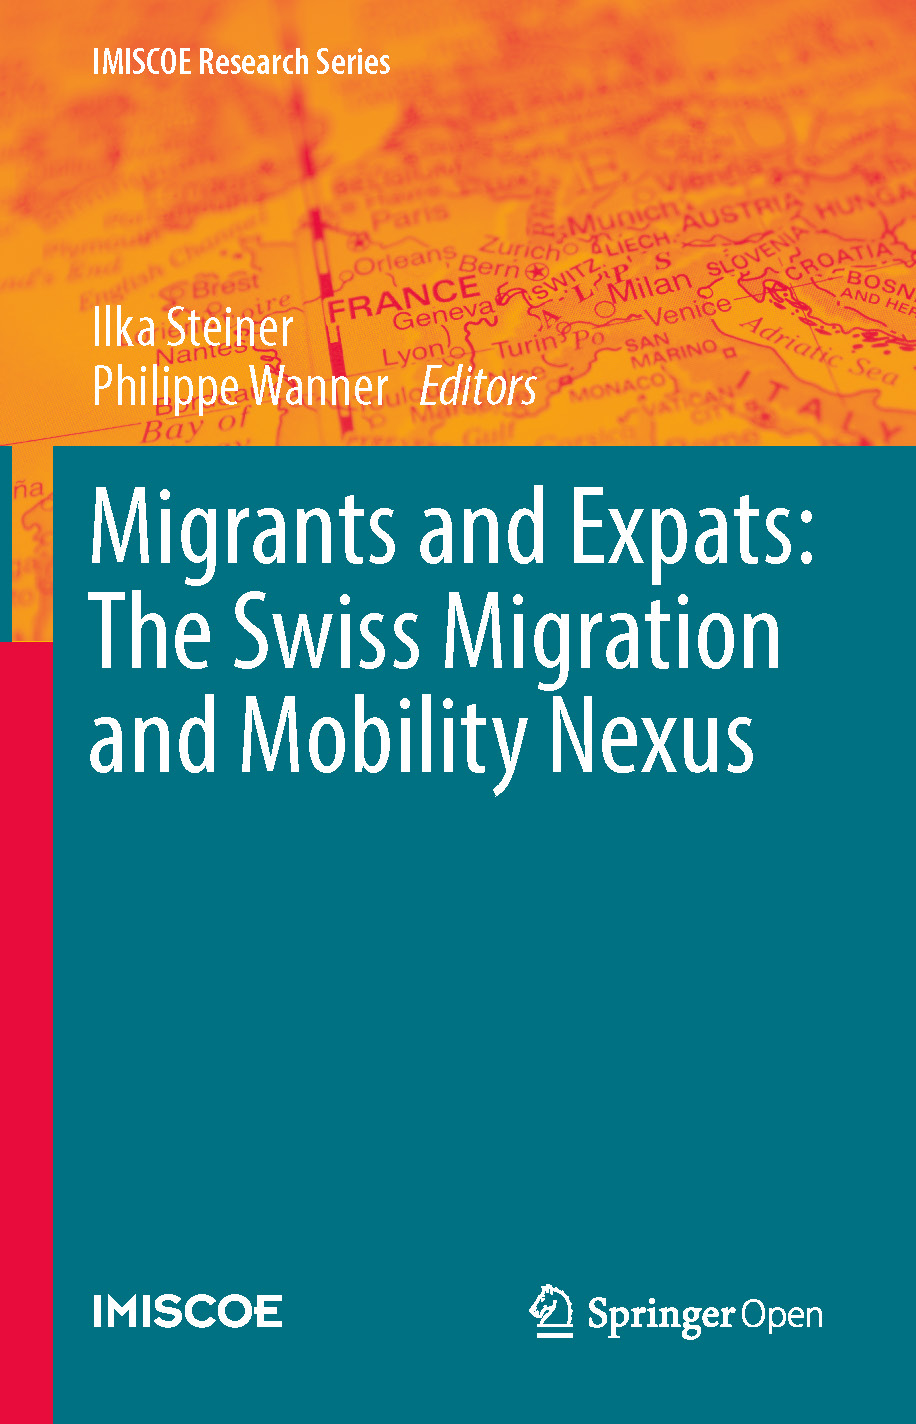 Cover of Migrants and Expats: The Swiss Migration and Mobility Nexus